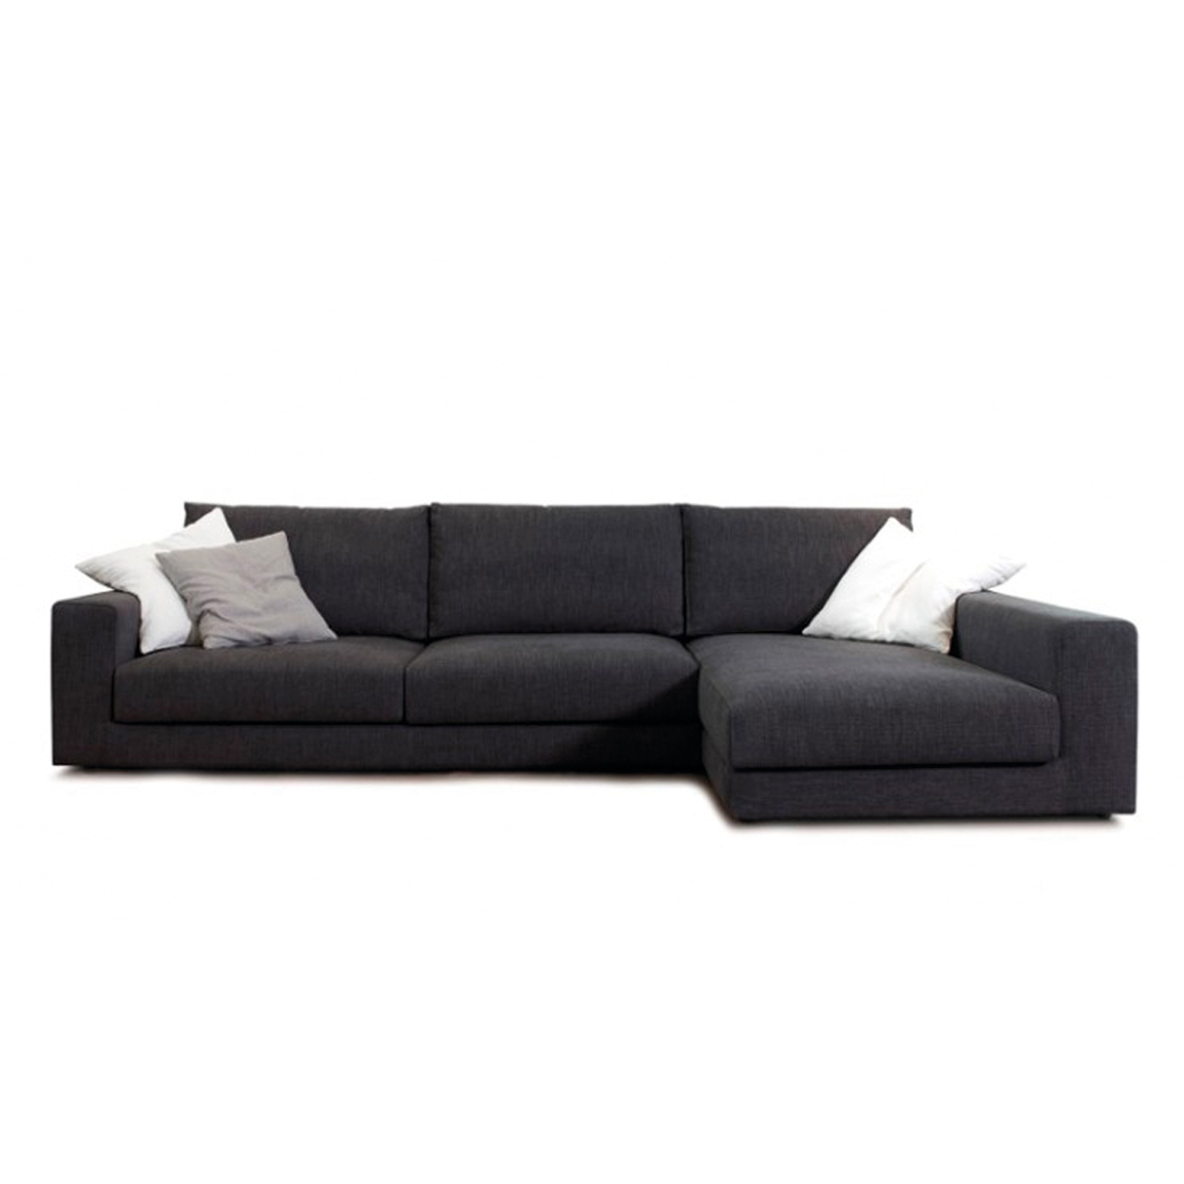 5 DOM sancal-sofa-city-soft-p. Elegancia en negro